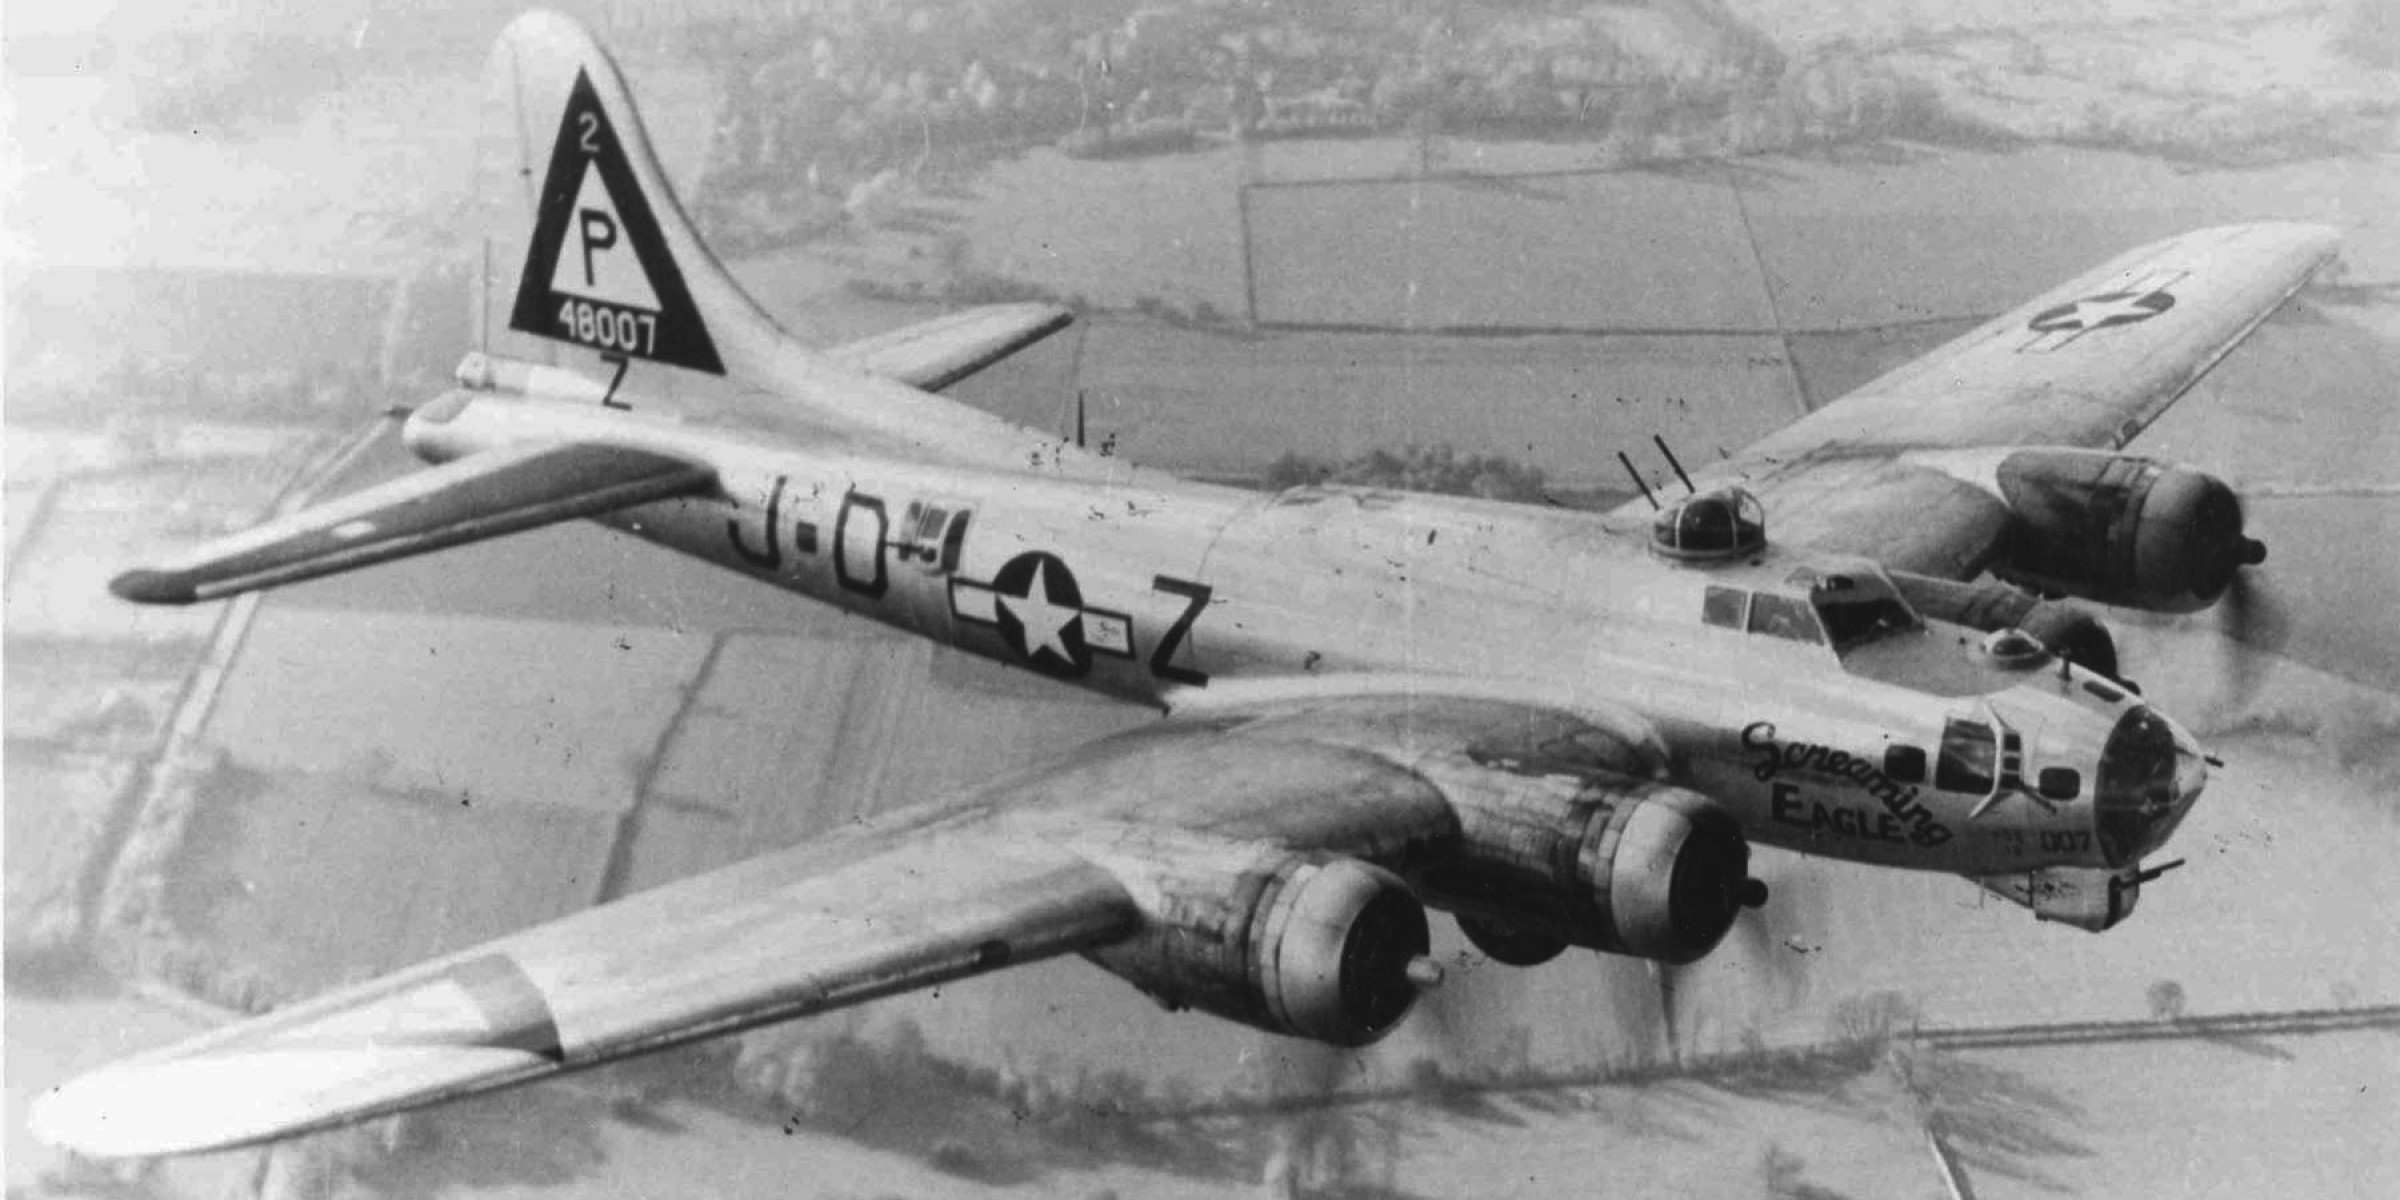 b17g_model_air_force_photo-2400x1200-616882297070